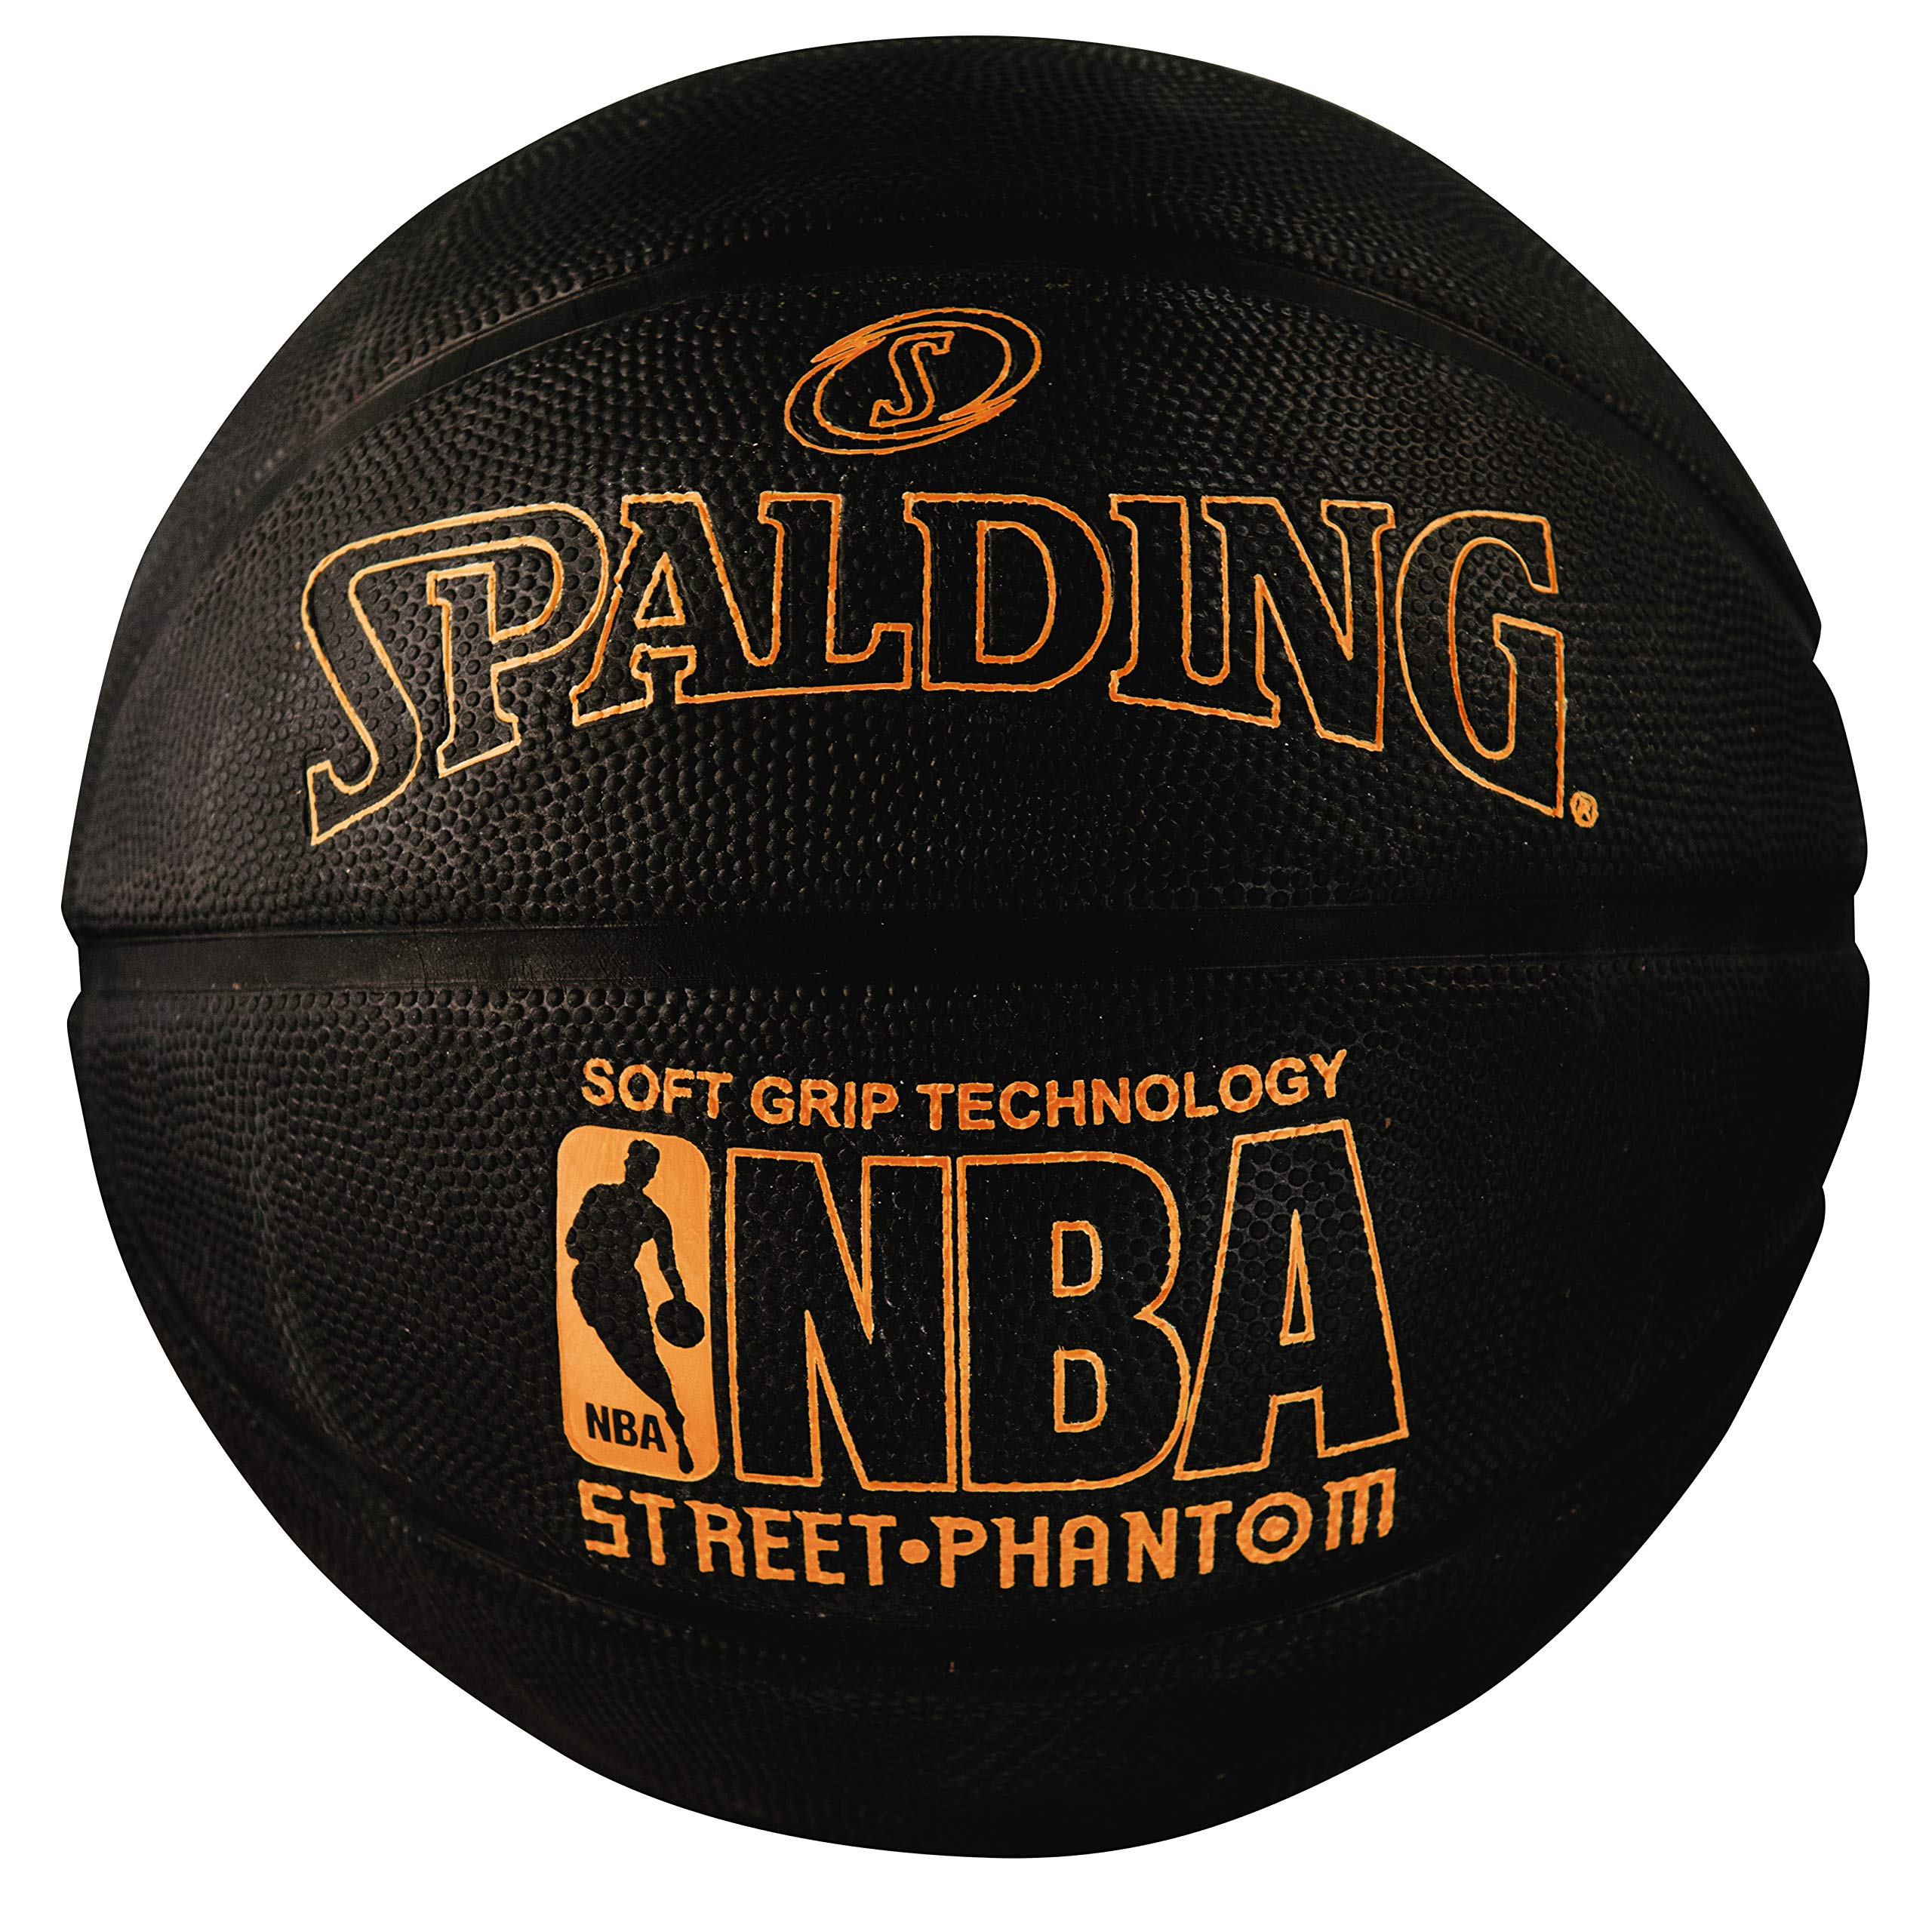 Spalding Street Phantom Basketball 29 5